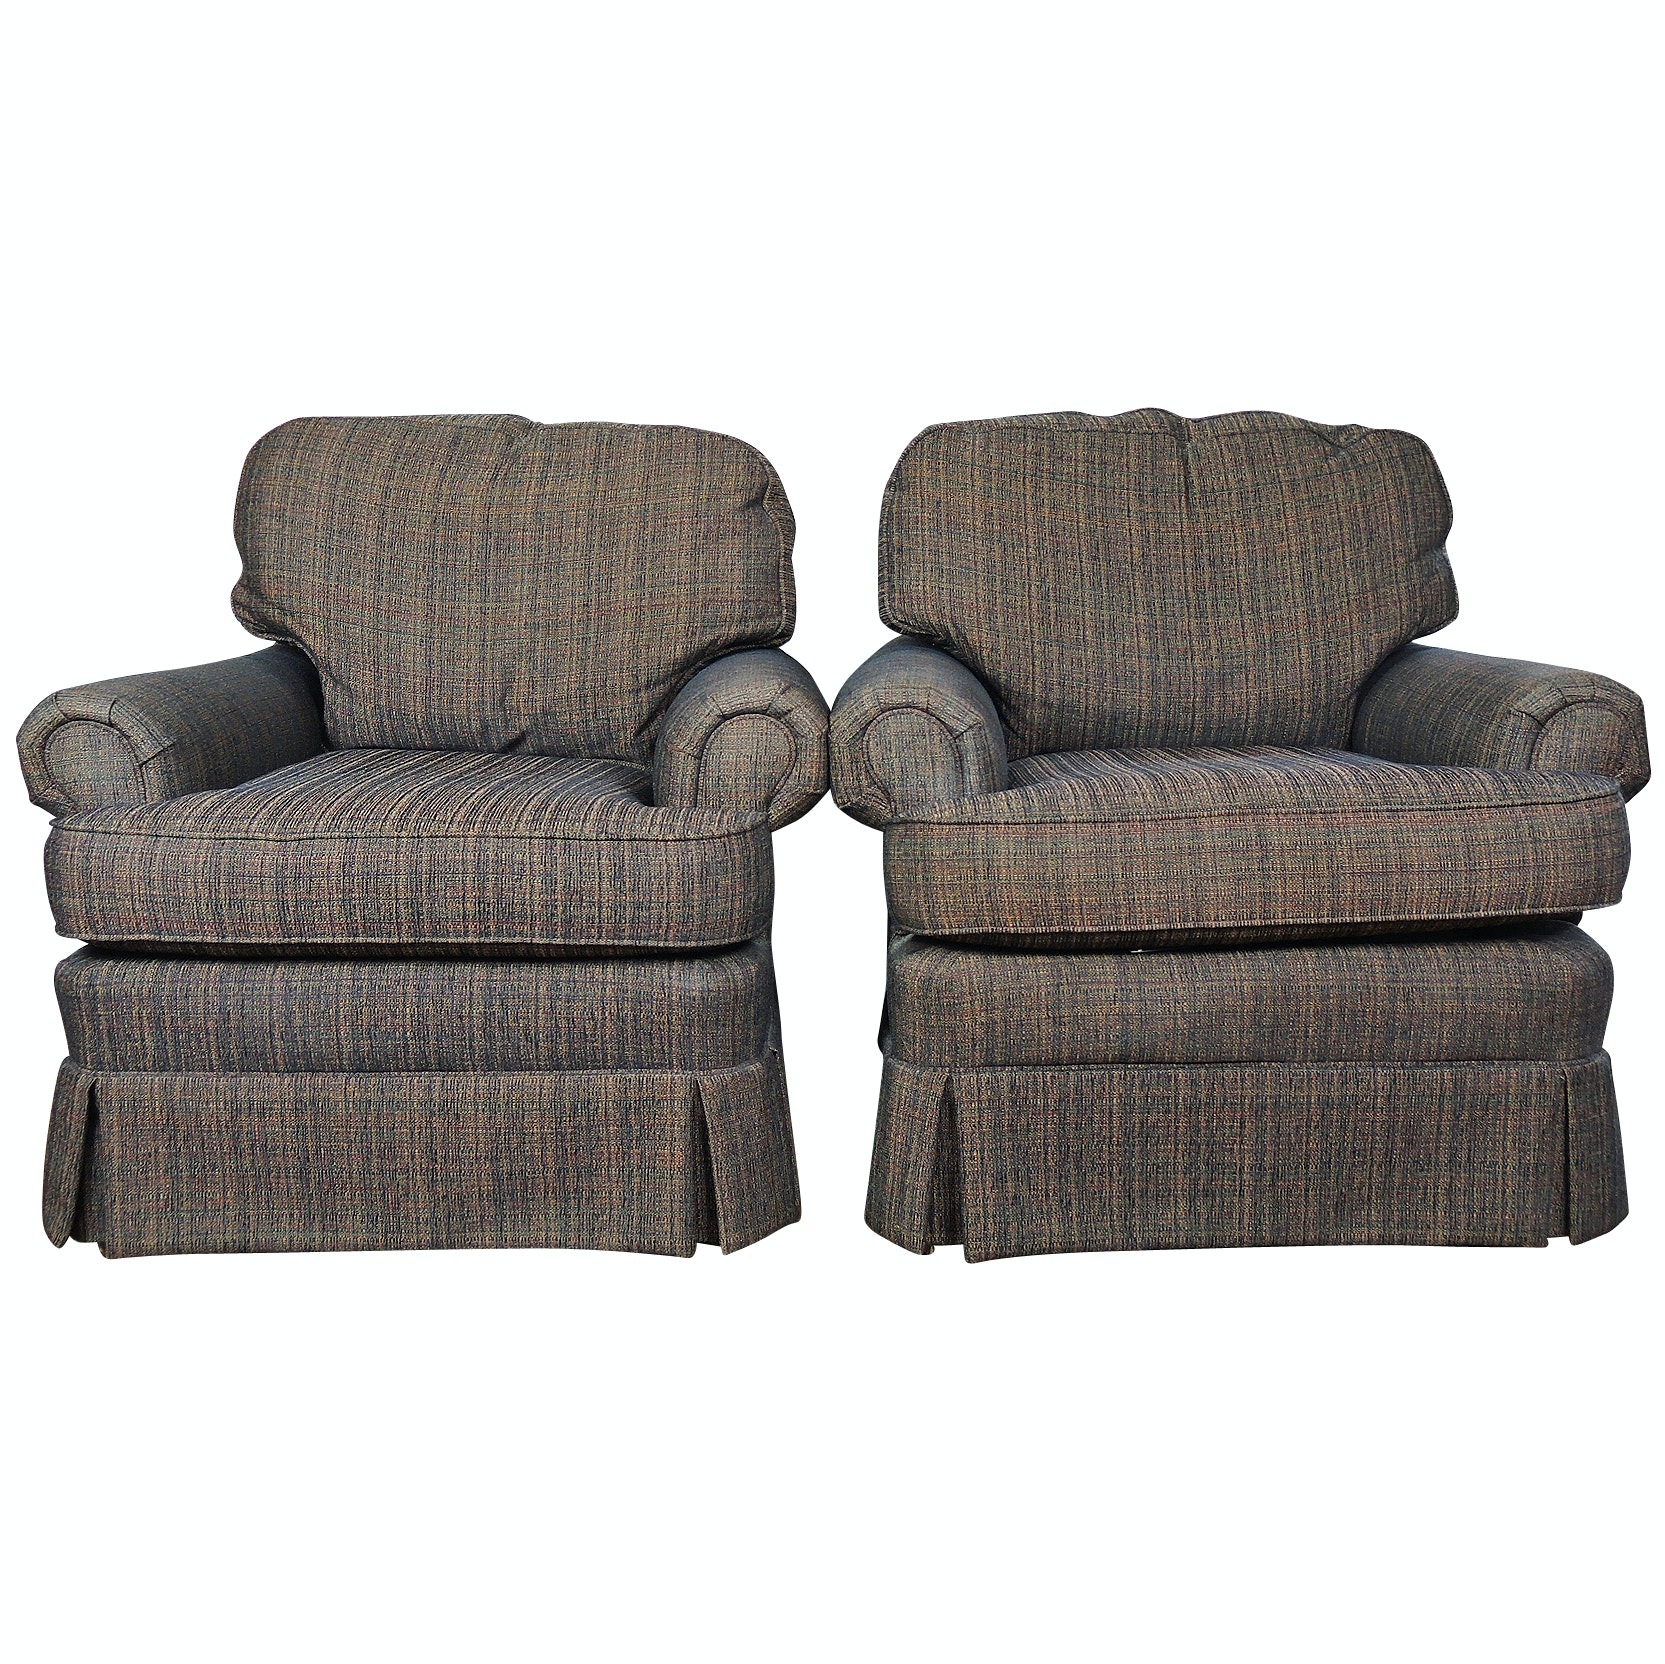 Fairfield Upholstered Armchairs